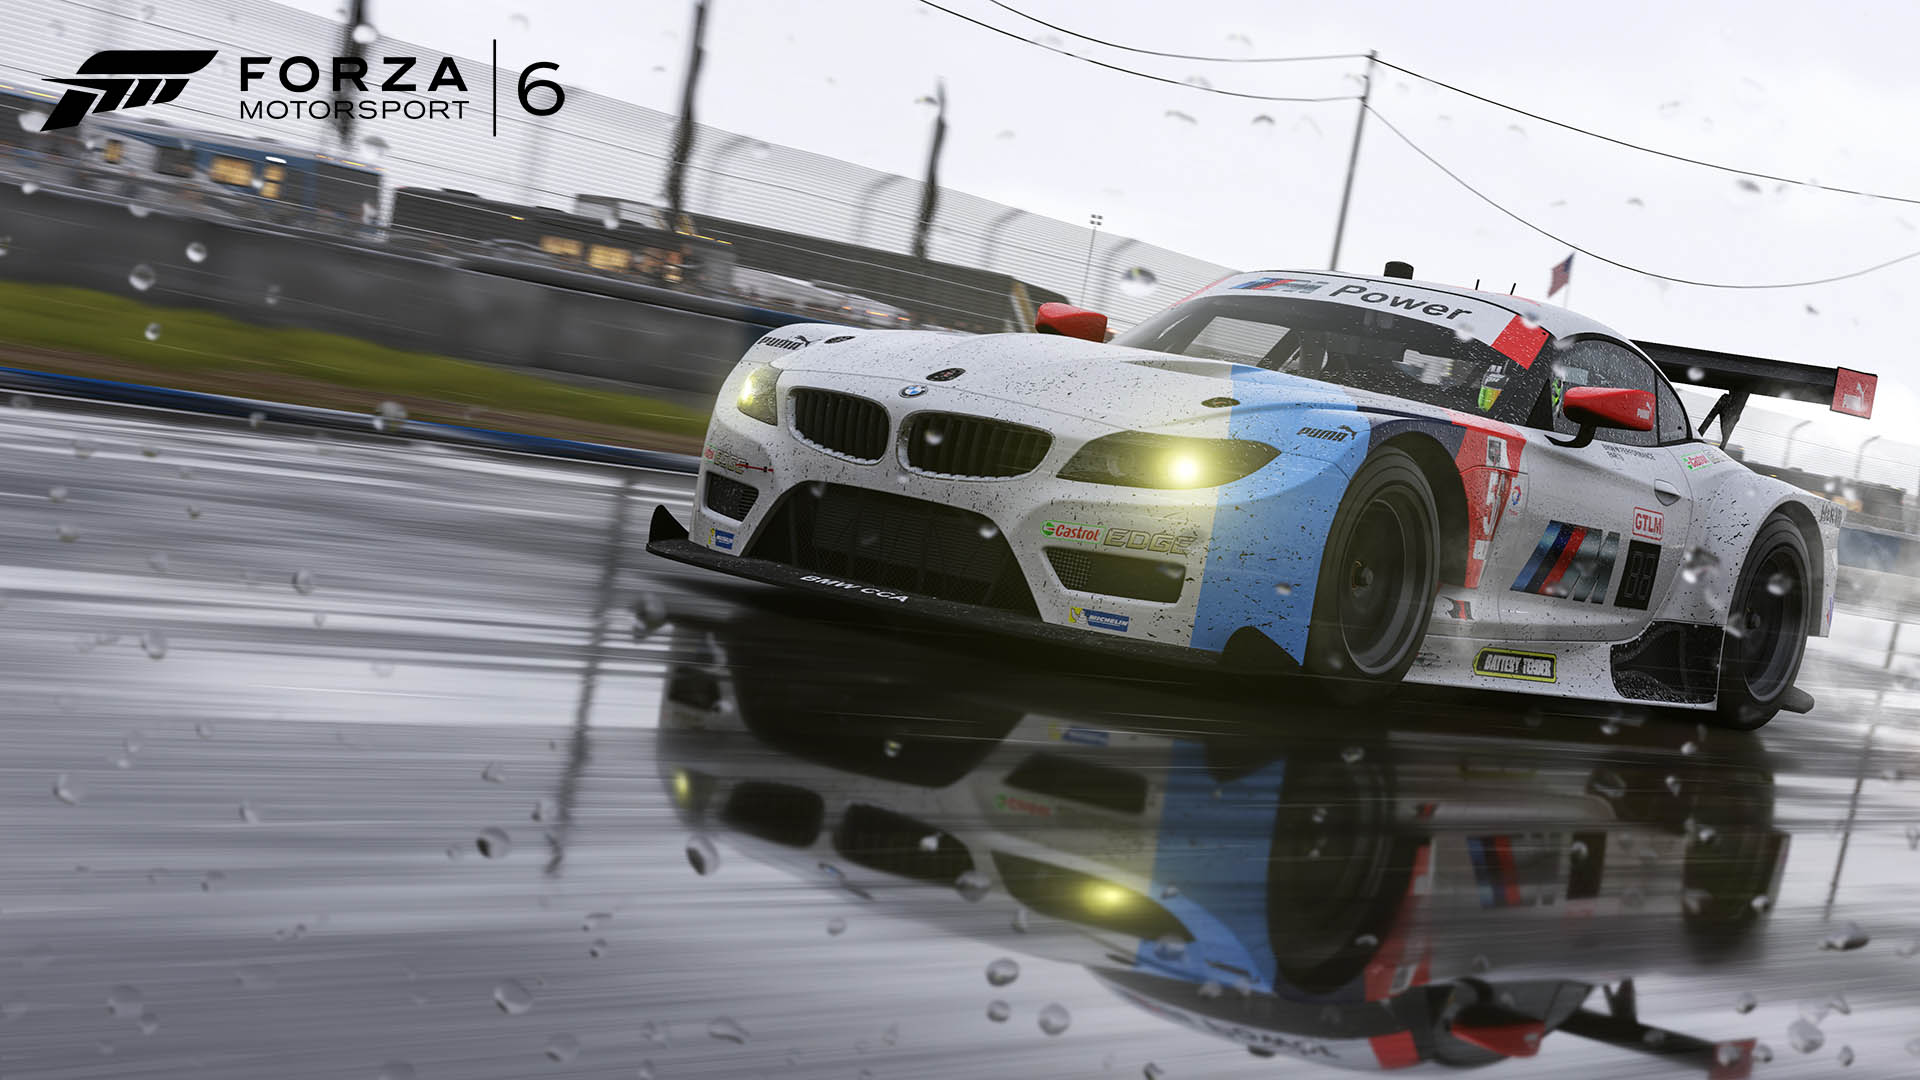 forza6-e3-press-kit-09-wm